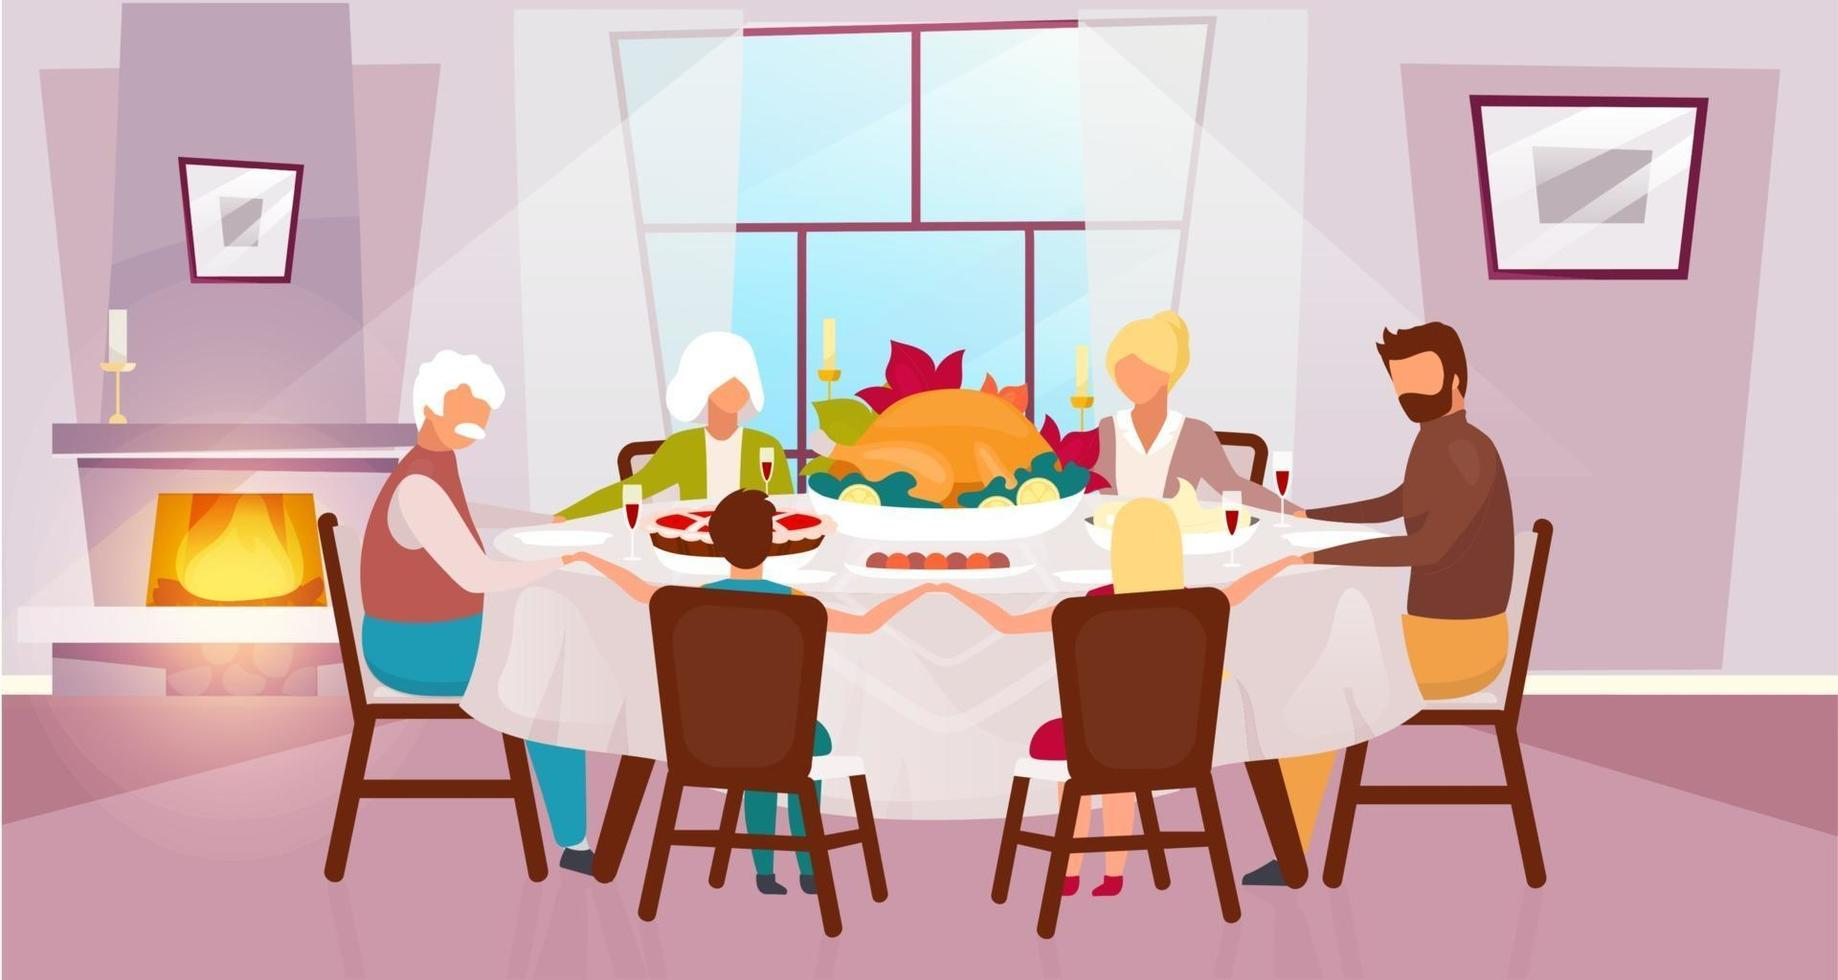 Thanksgiving day flat vector illustration. Annual autumn holiday in United States. Grateful meal. Celebrating harvest together with grandparents. Family dinner with turkey cartoon characters